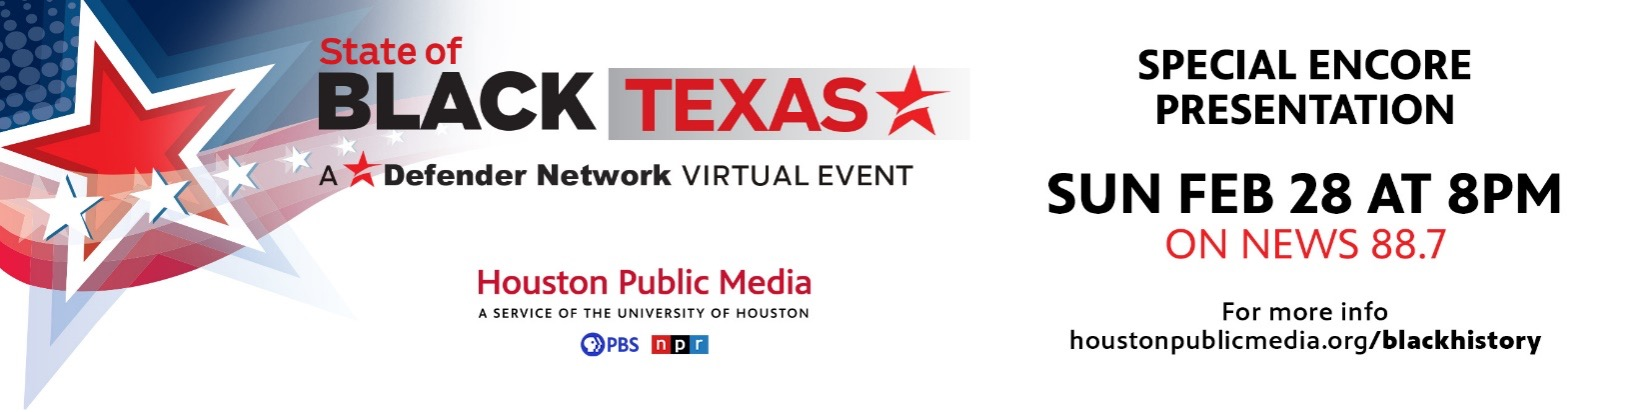 The State of BLACK TEXAS: A Defender Network Virtual Event with Houston Public Media. Special Encore presentation on Sunday, February 28 at 8PM on News 88.7